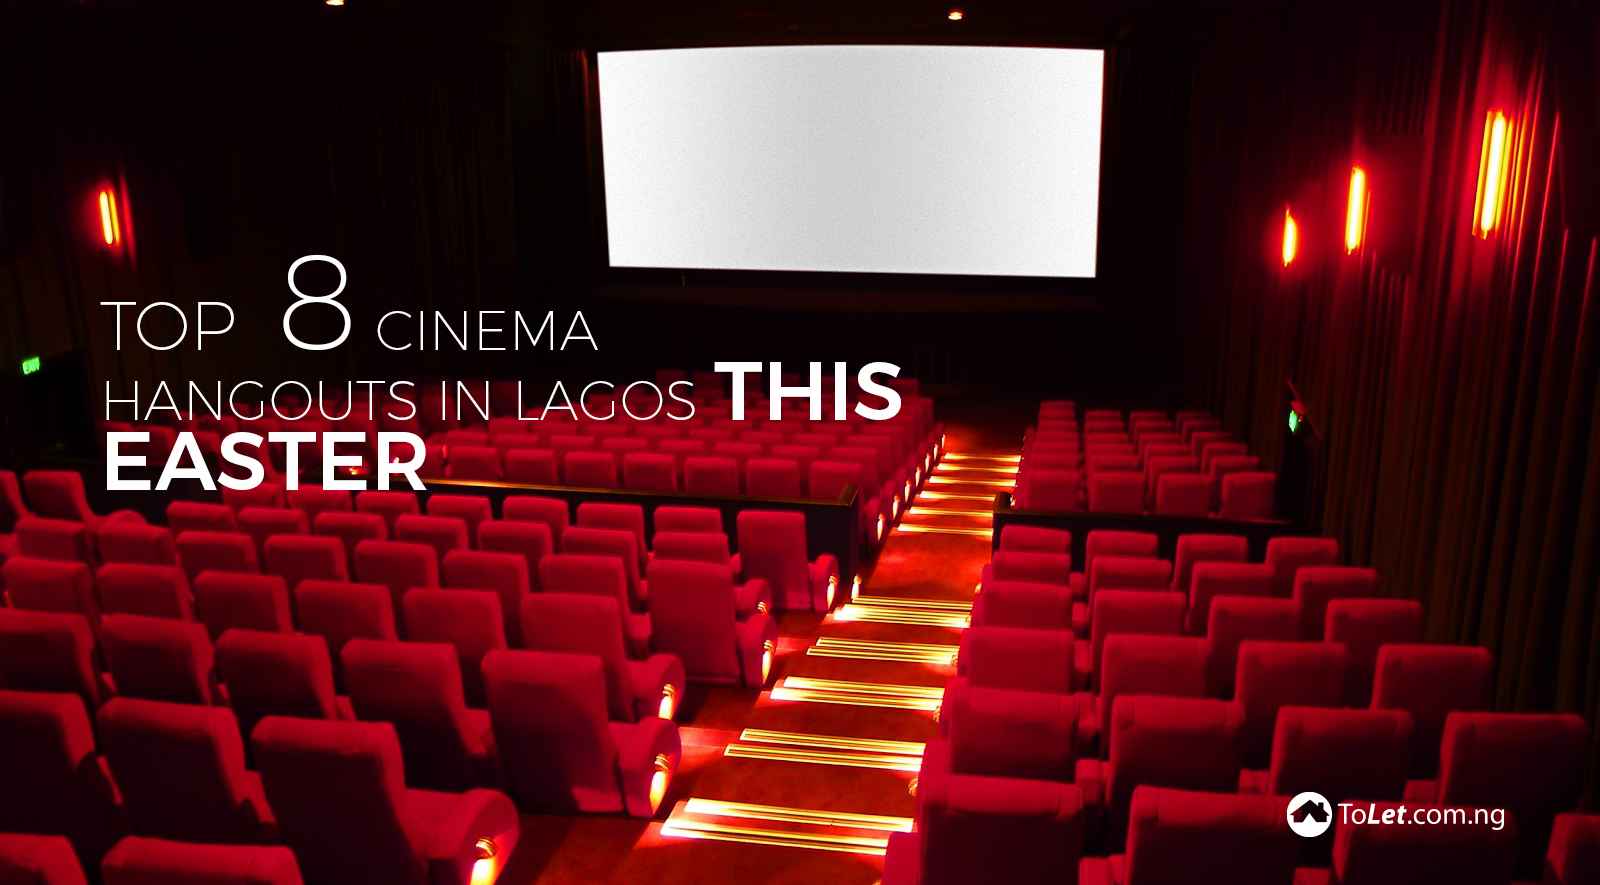 Top 8 Cinemas to hangout in Lagos